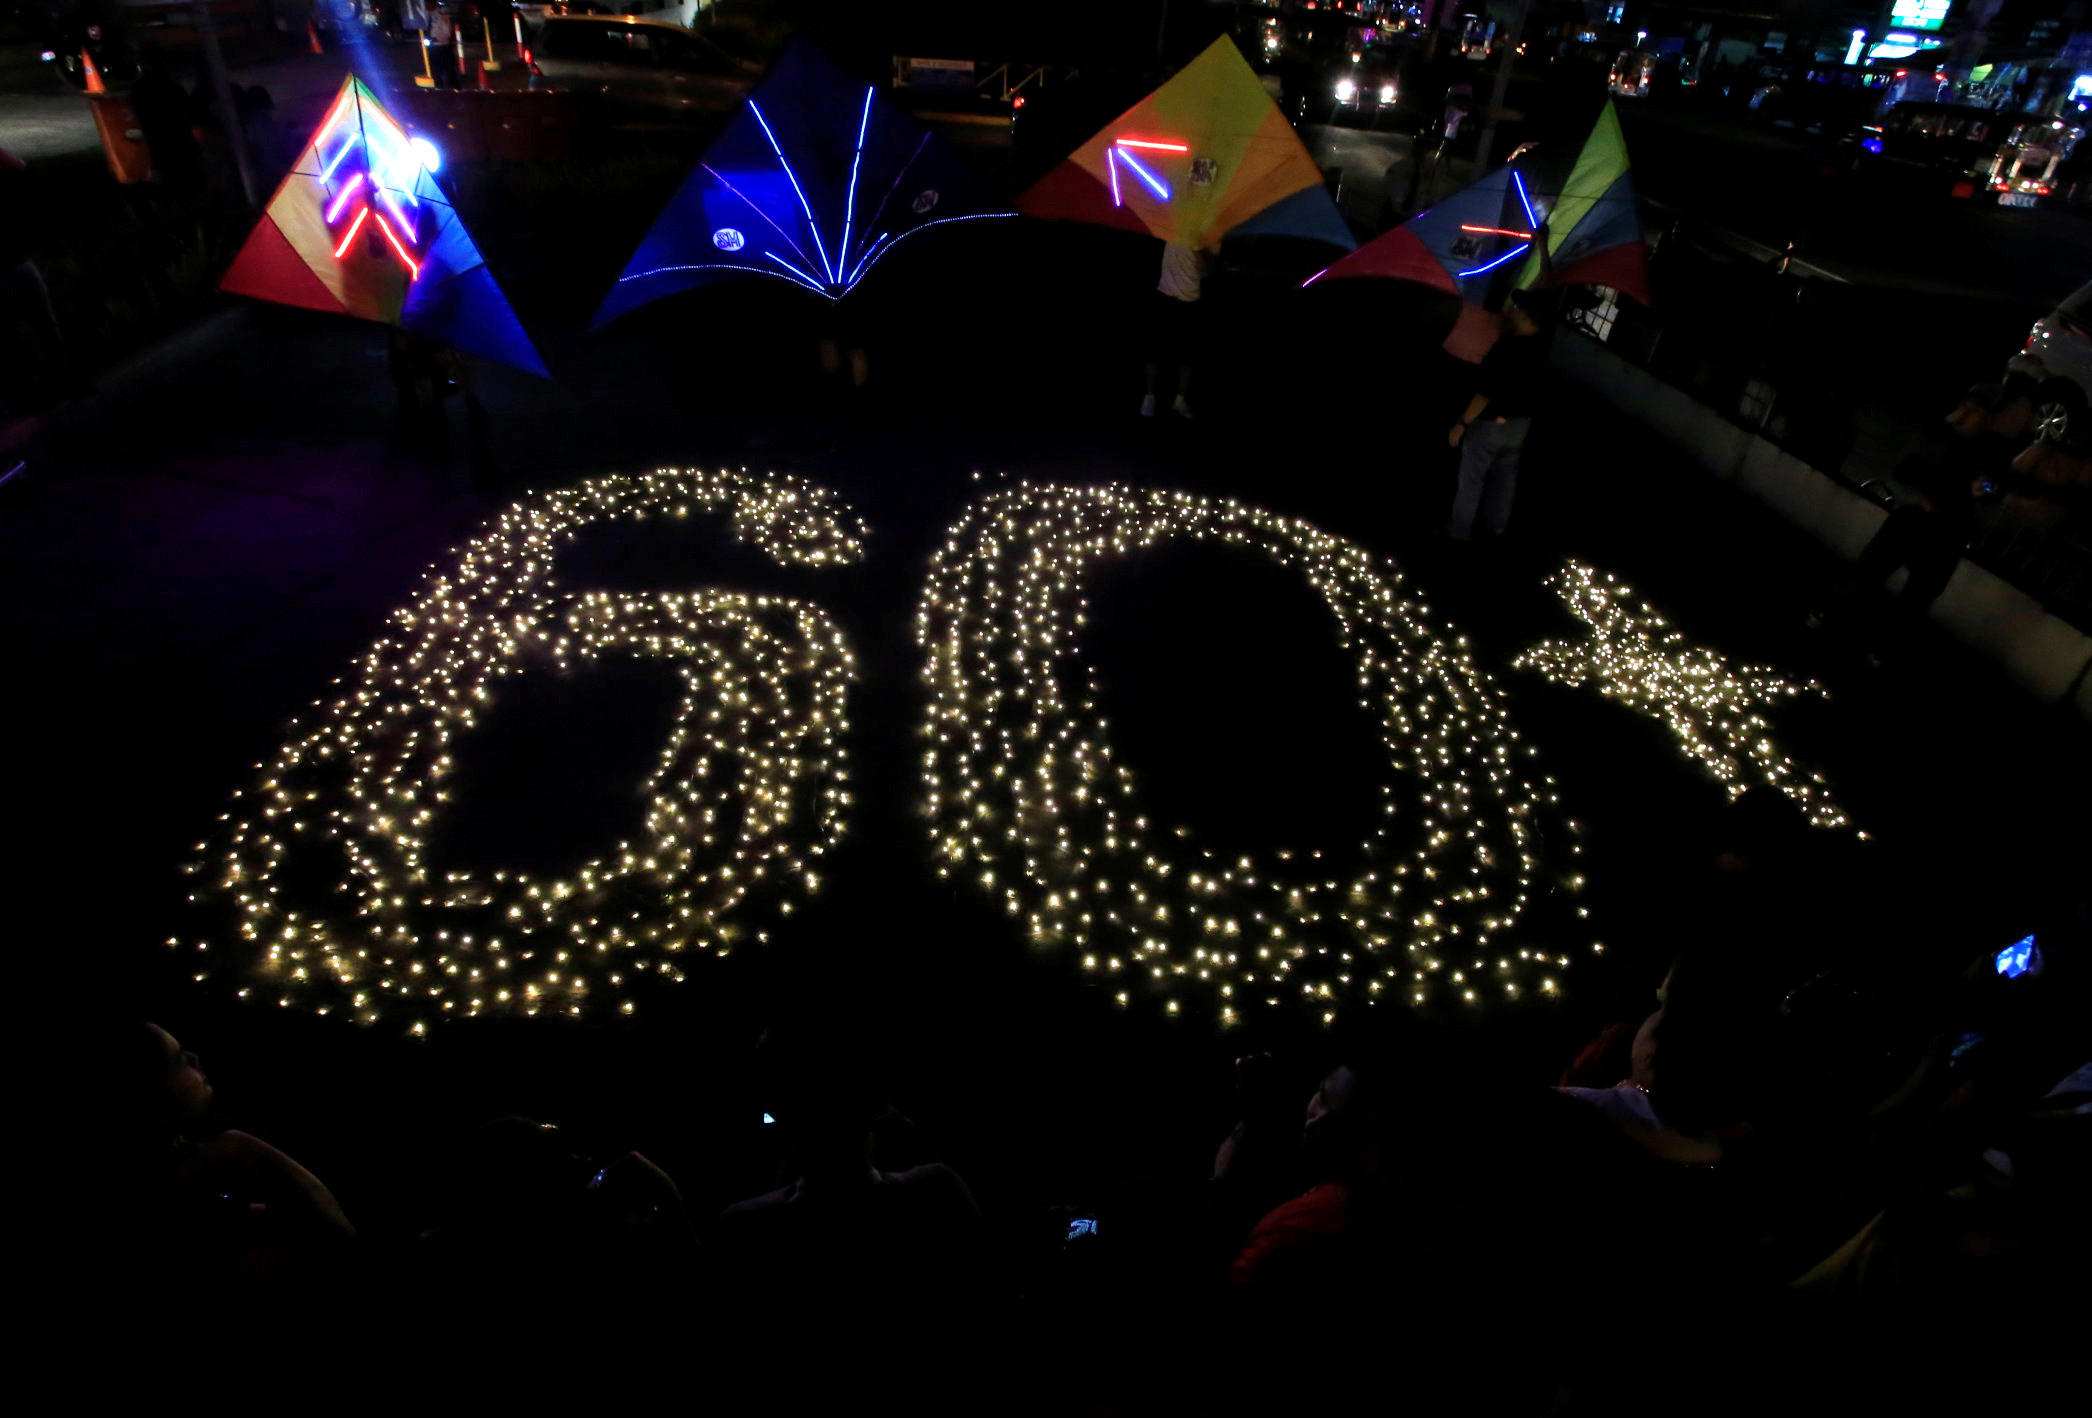 Lamps representing the 60 minutes for Earth Hour during which lights are switched off, in the Philippines